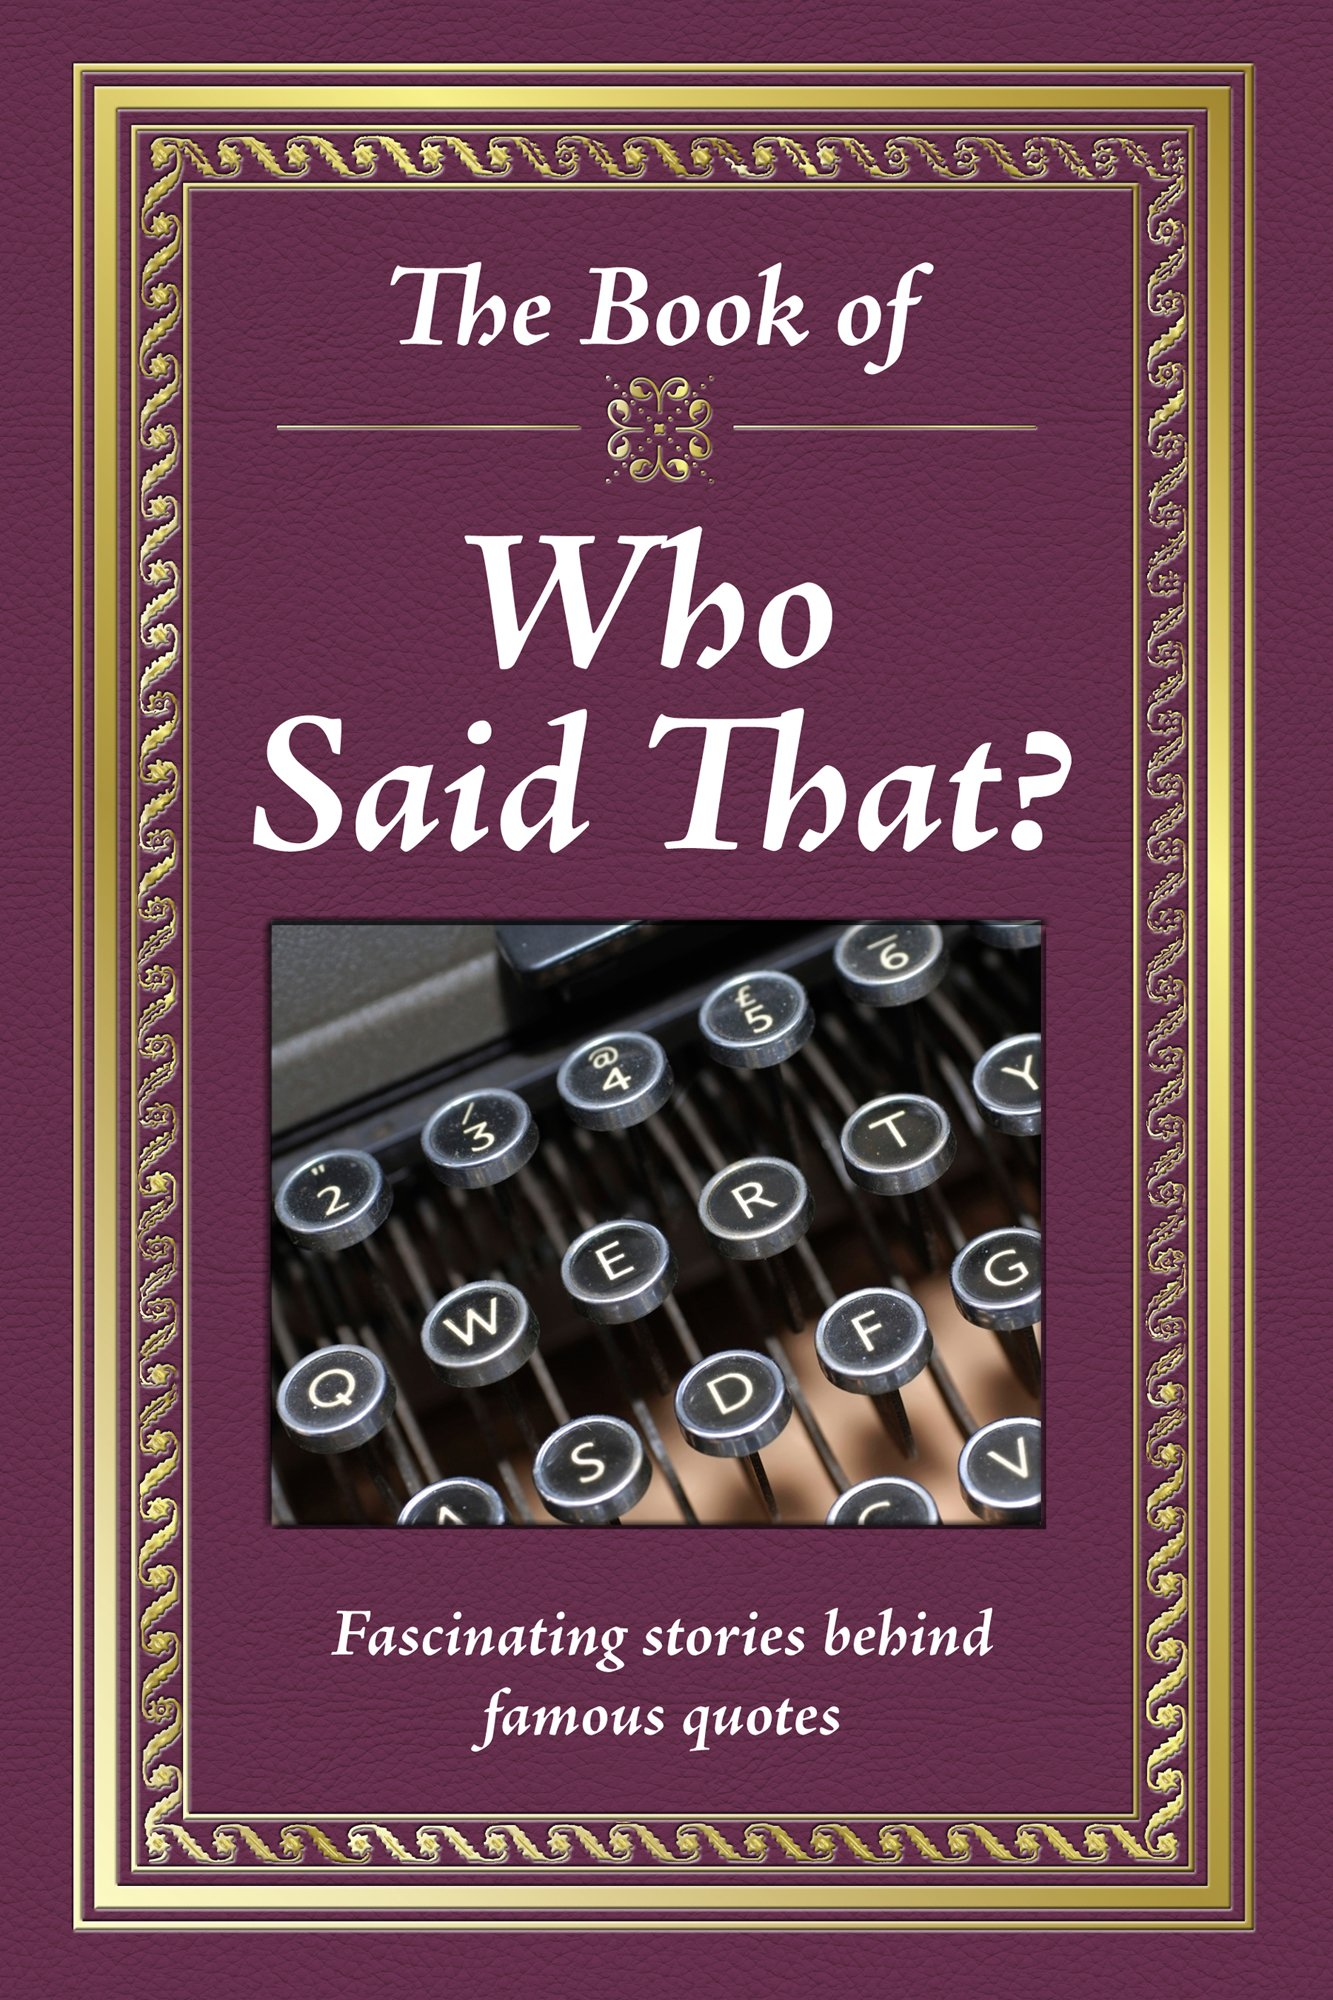 Image result for The Book of Who Said That?